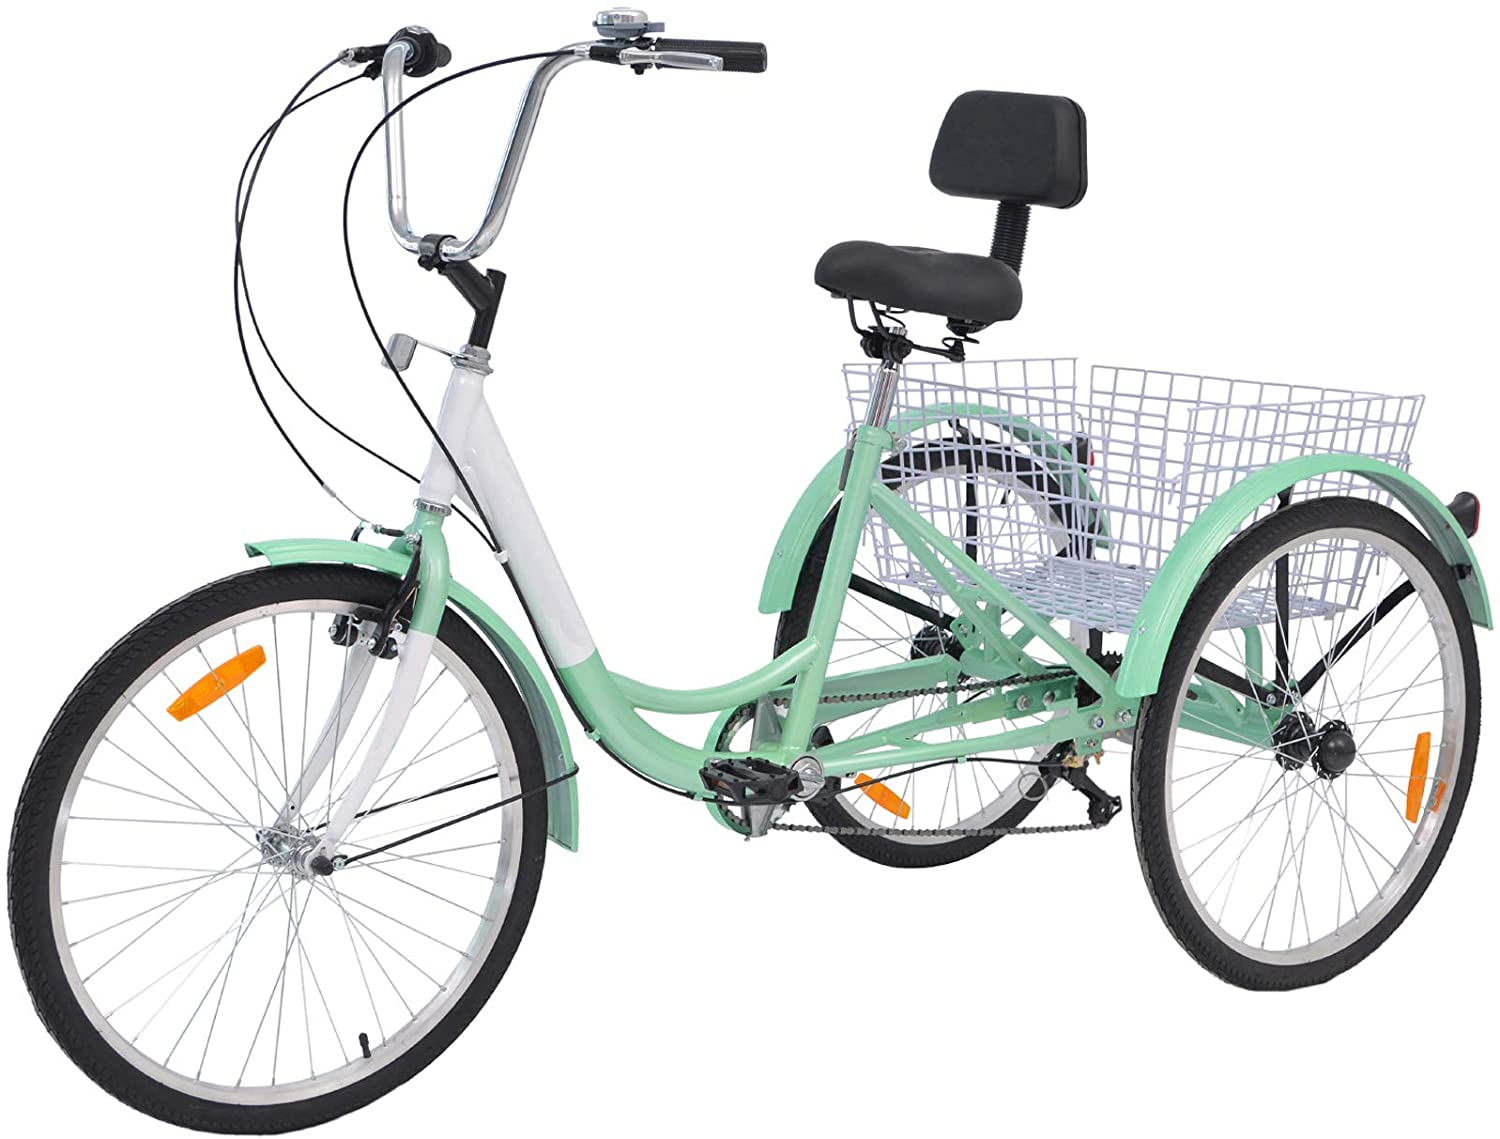 Slsy 7-speed adult tricycle in mint green, best adult tricycle